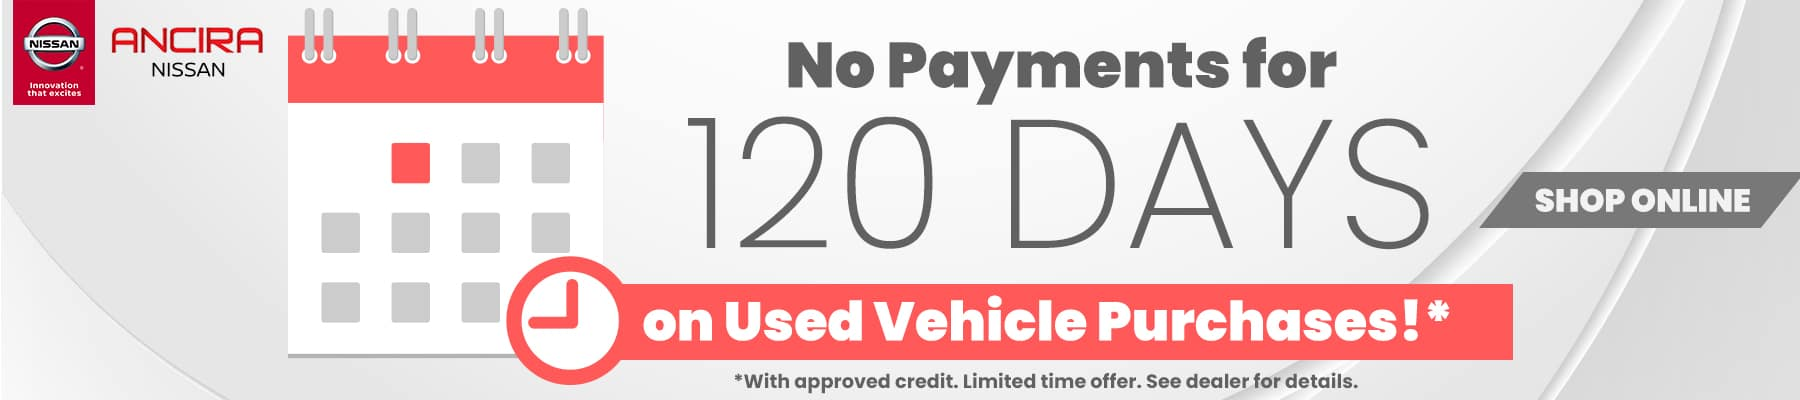 Used Cars near me in San Antonio | Ancira Nissan | No payments for 120 Days available when financed with SSFCU. With approved credit. Offer expires 07/01/20.